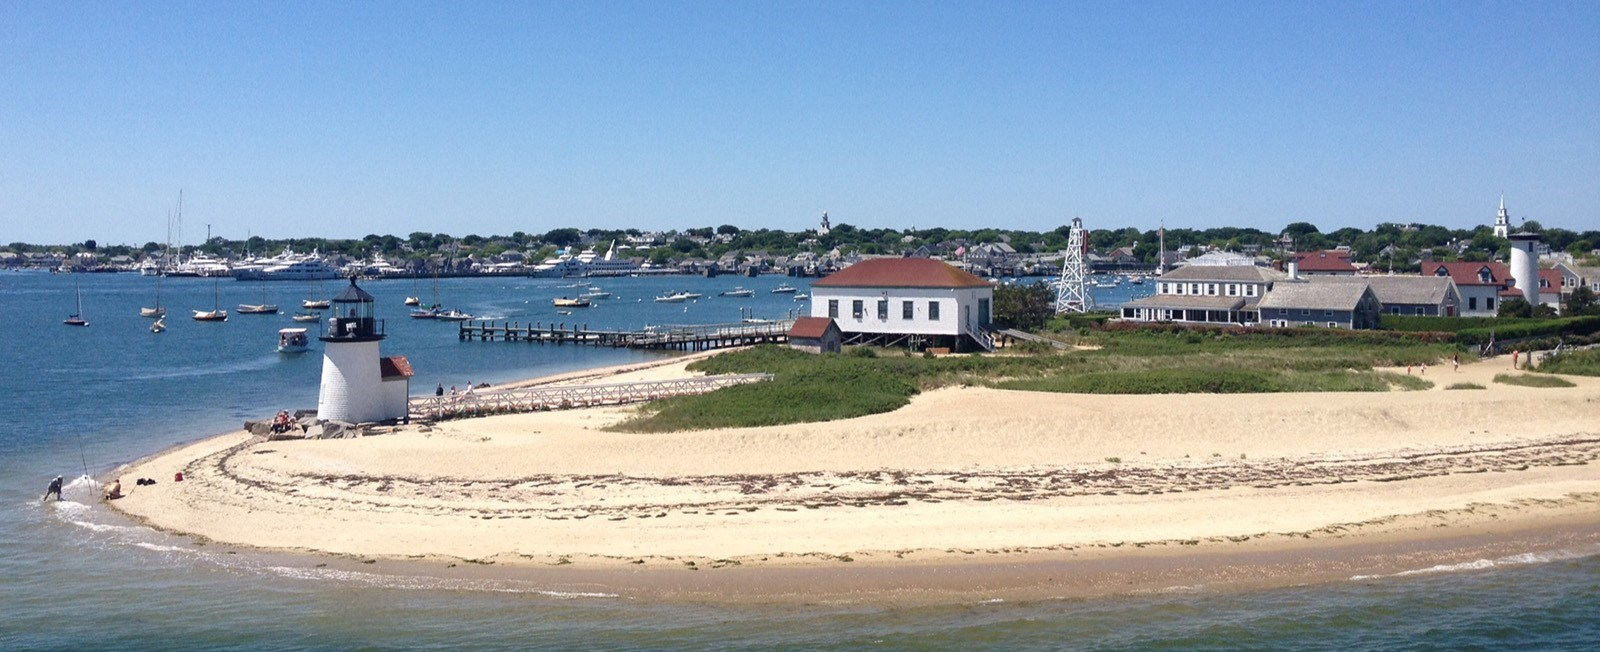 Many people visit Nantucket to attend a special Island event. Here are some of the biggest events on Nantucket this summer, and vacation rentals with last-minute availability.